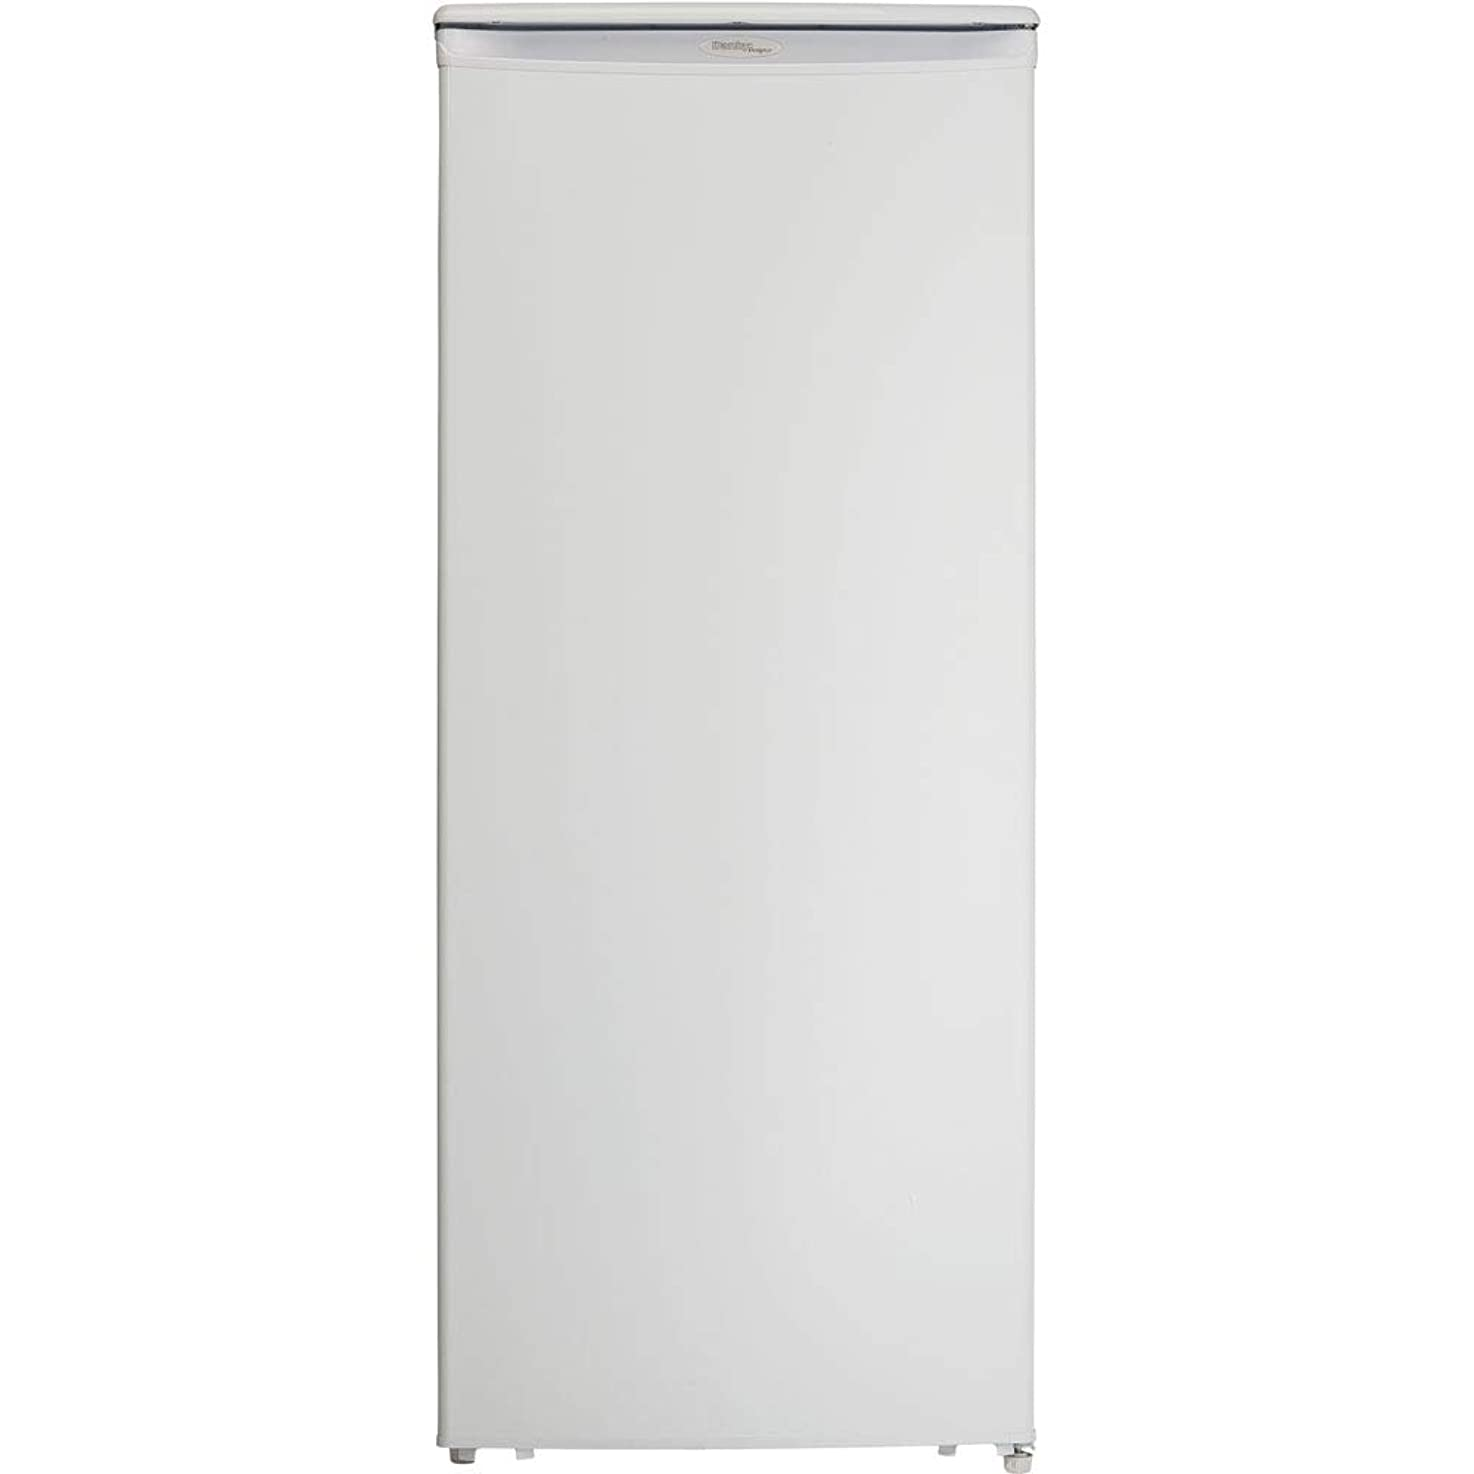 Danby Energy Star 10.1-Cu. Ft. Upright Freezer in White nssbxnpcuvsso8